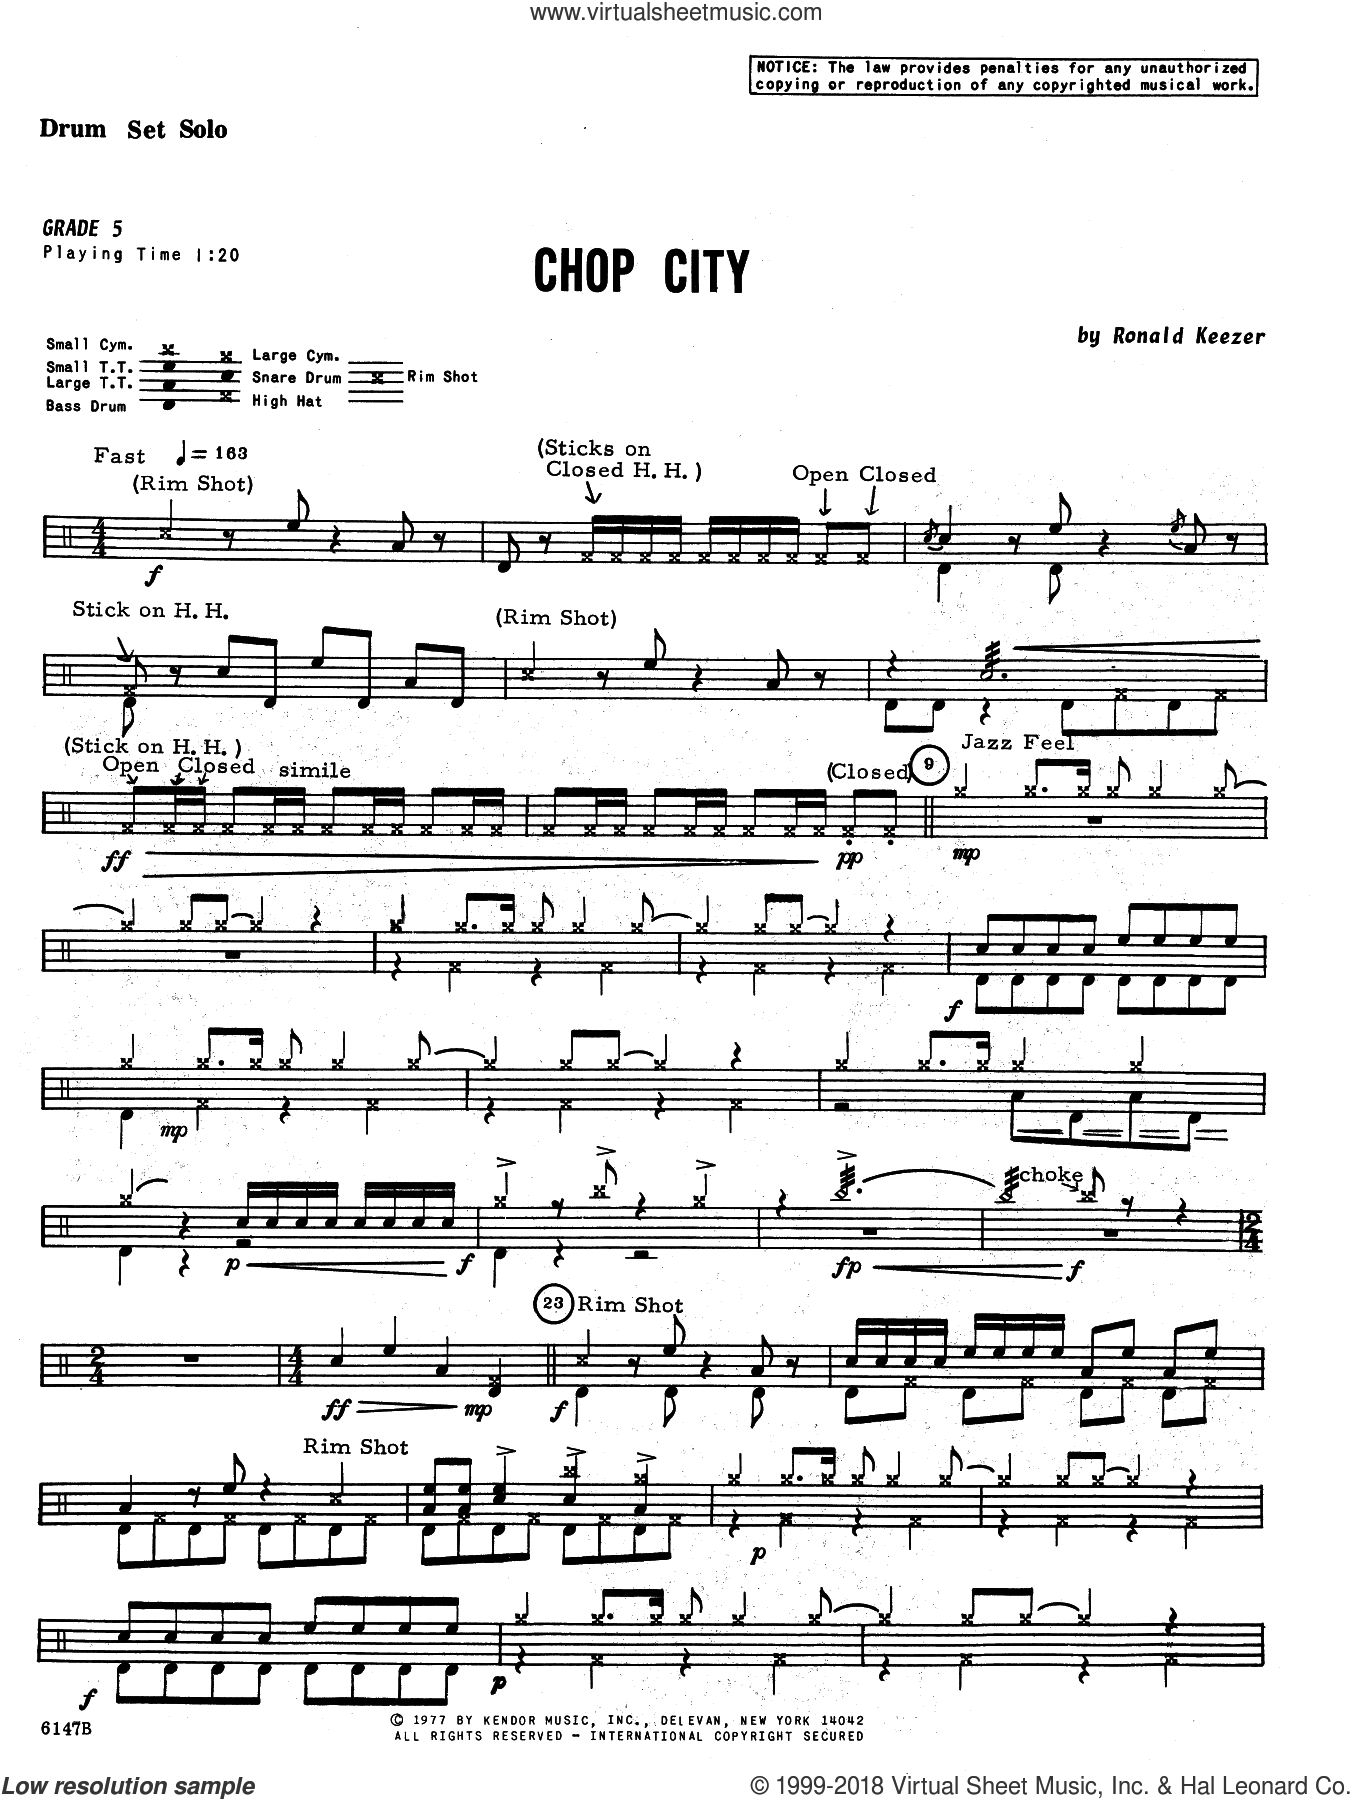 Chop City sheet music for percussions by Keezer, intermediate skill level